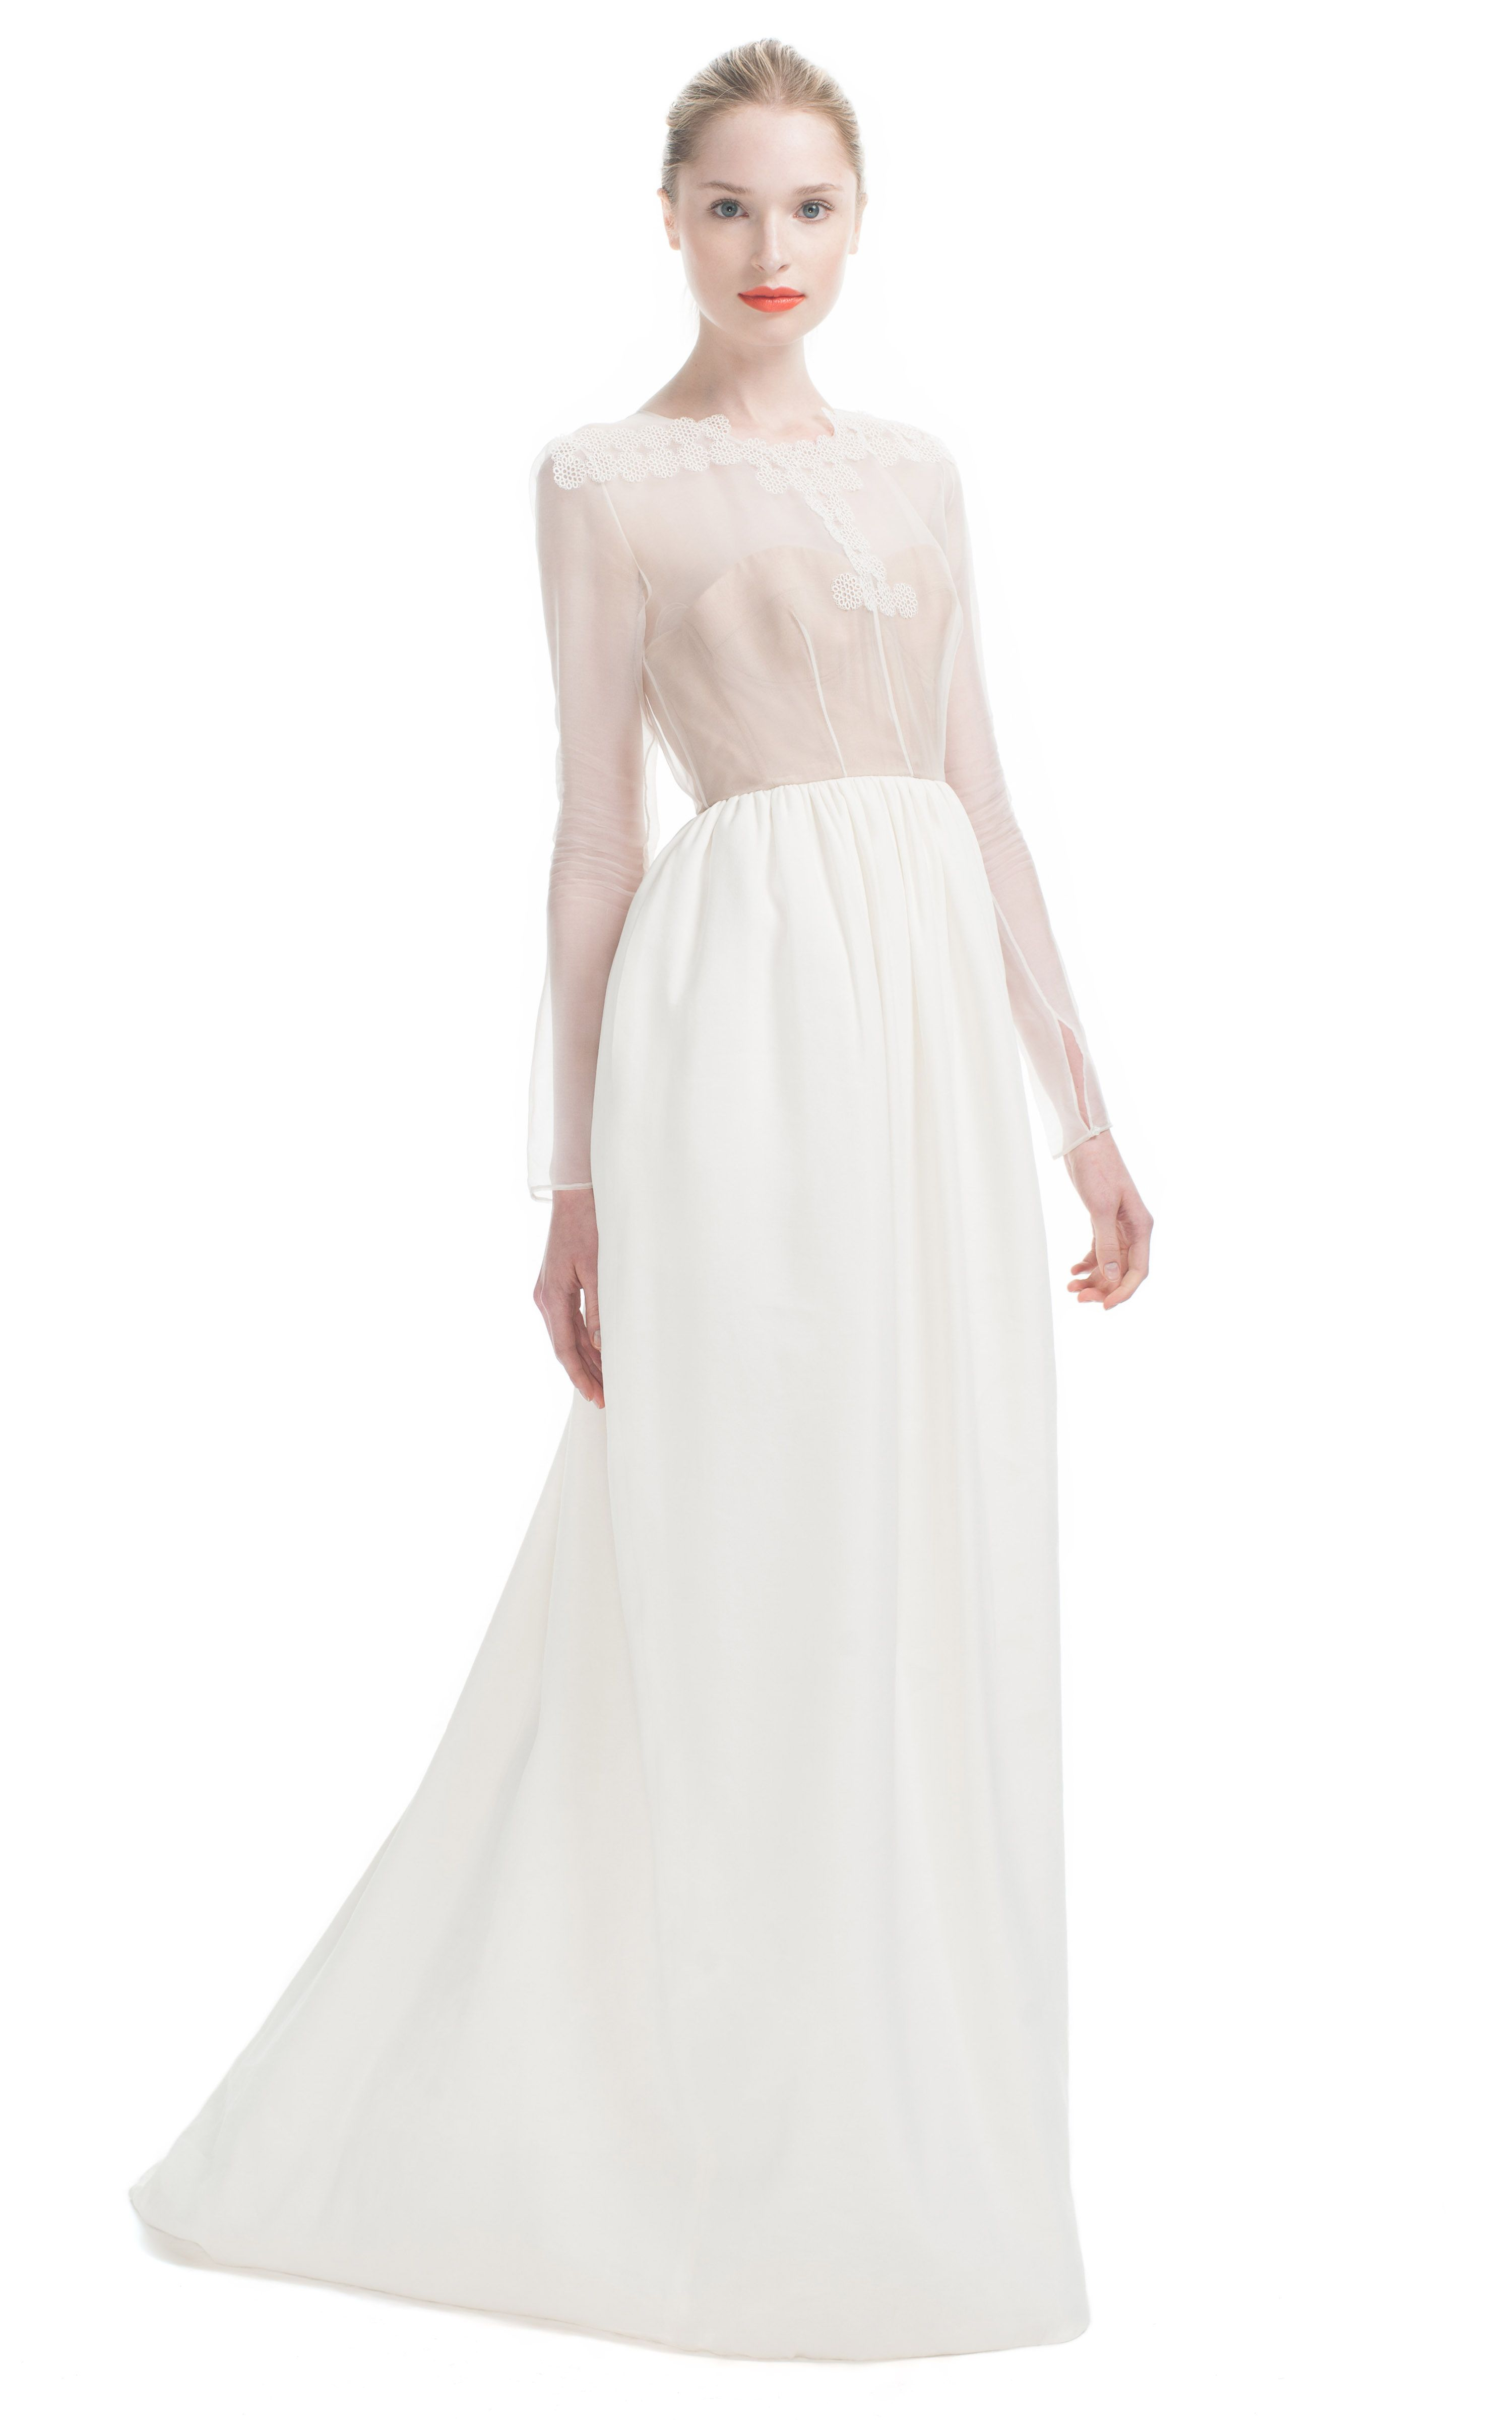 Honor ss style wants pinterest gowns stretches and wedding